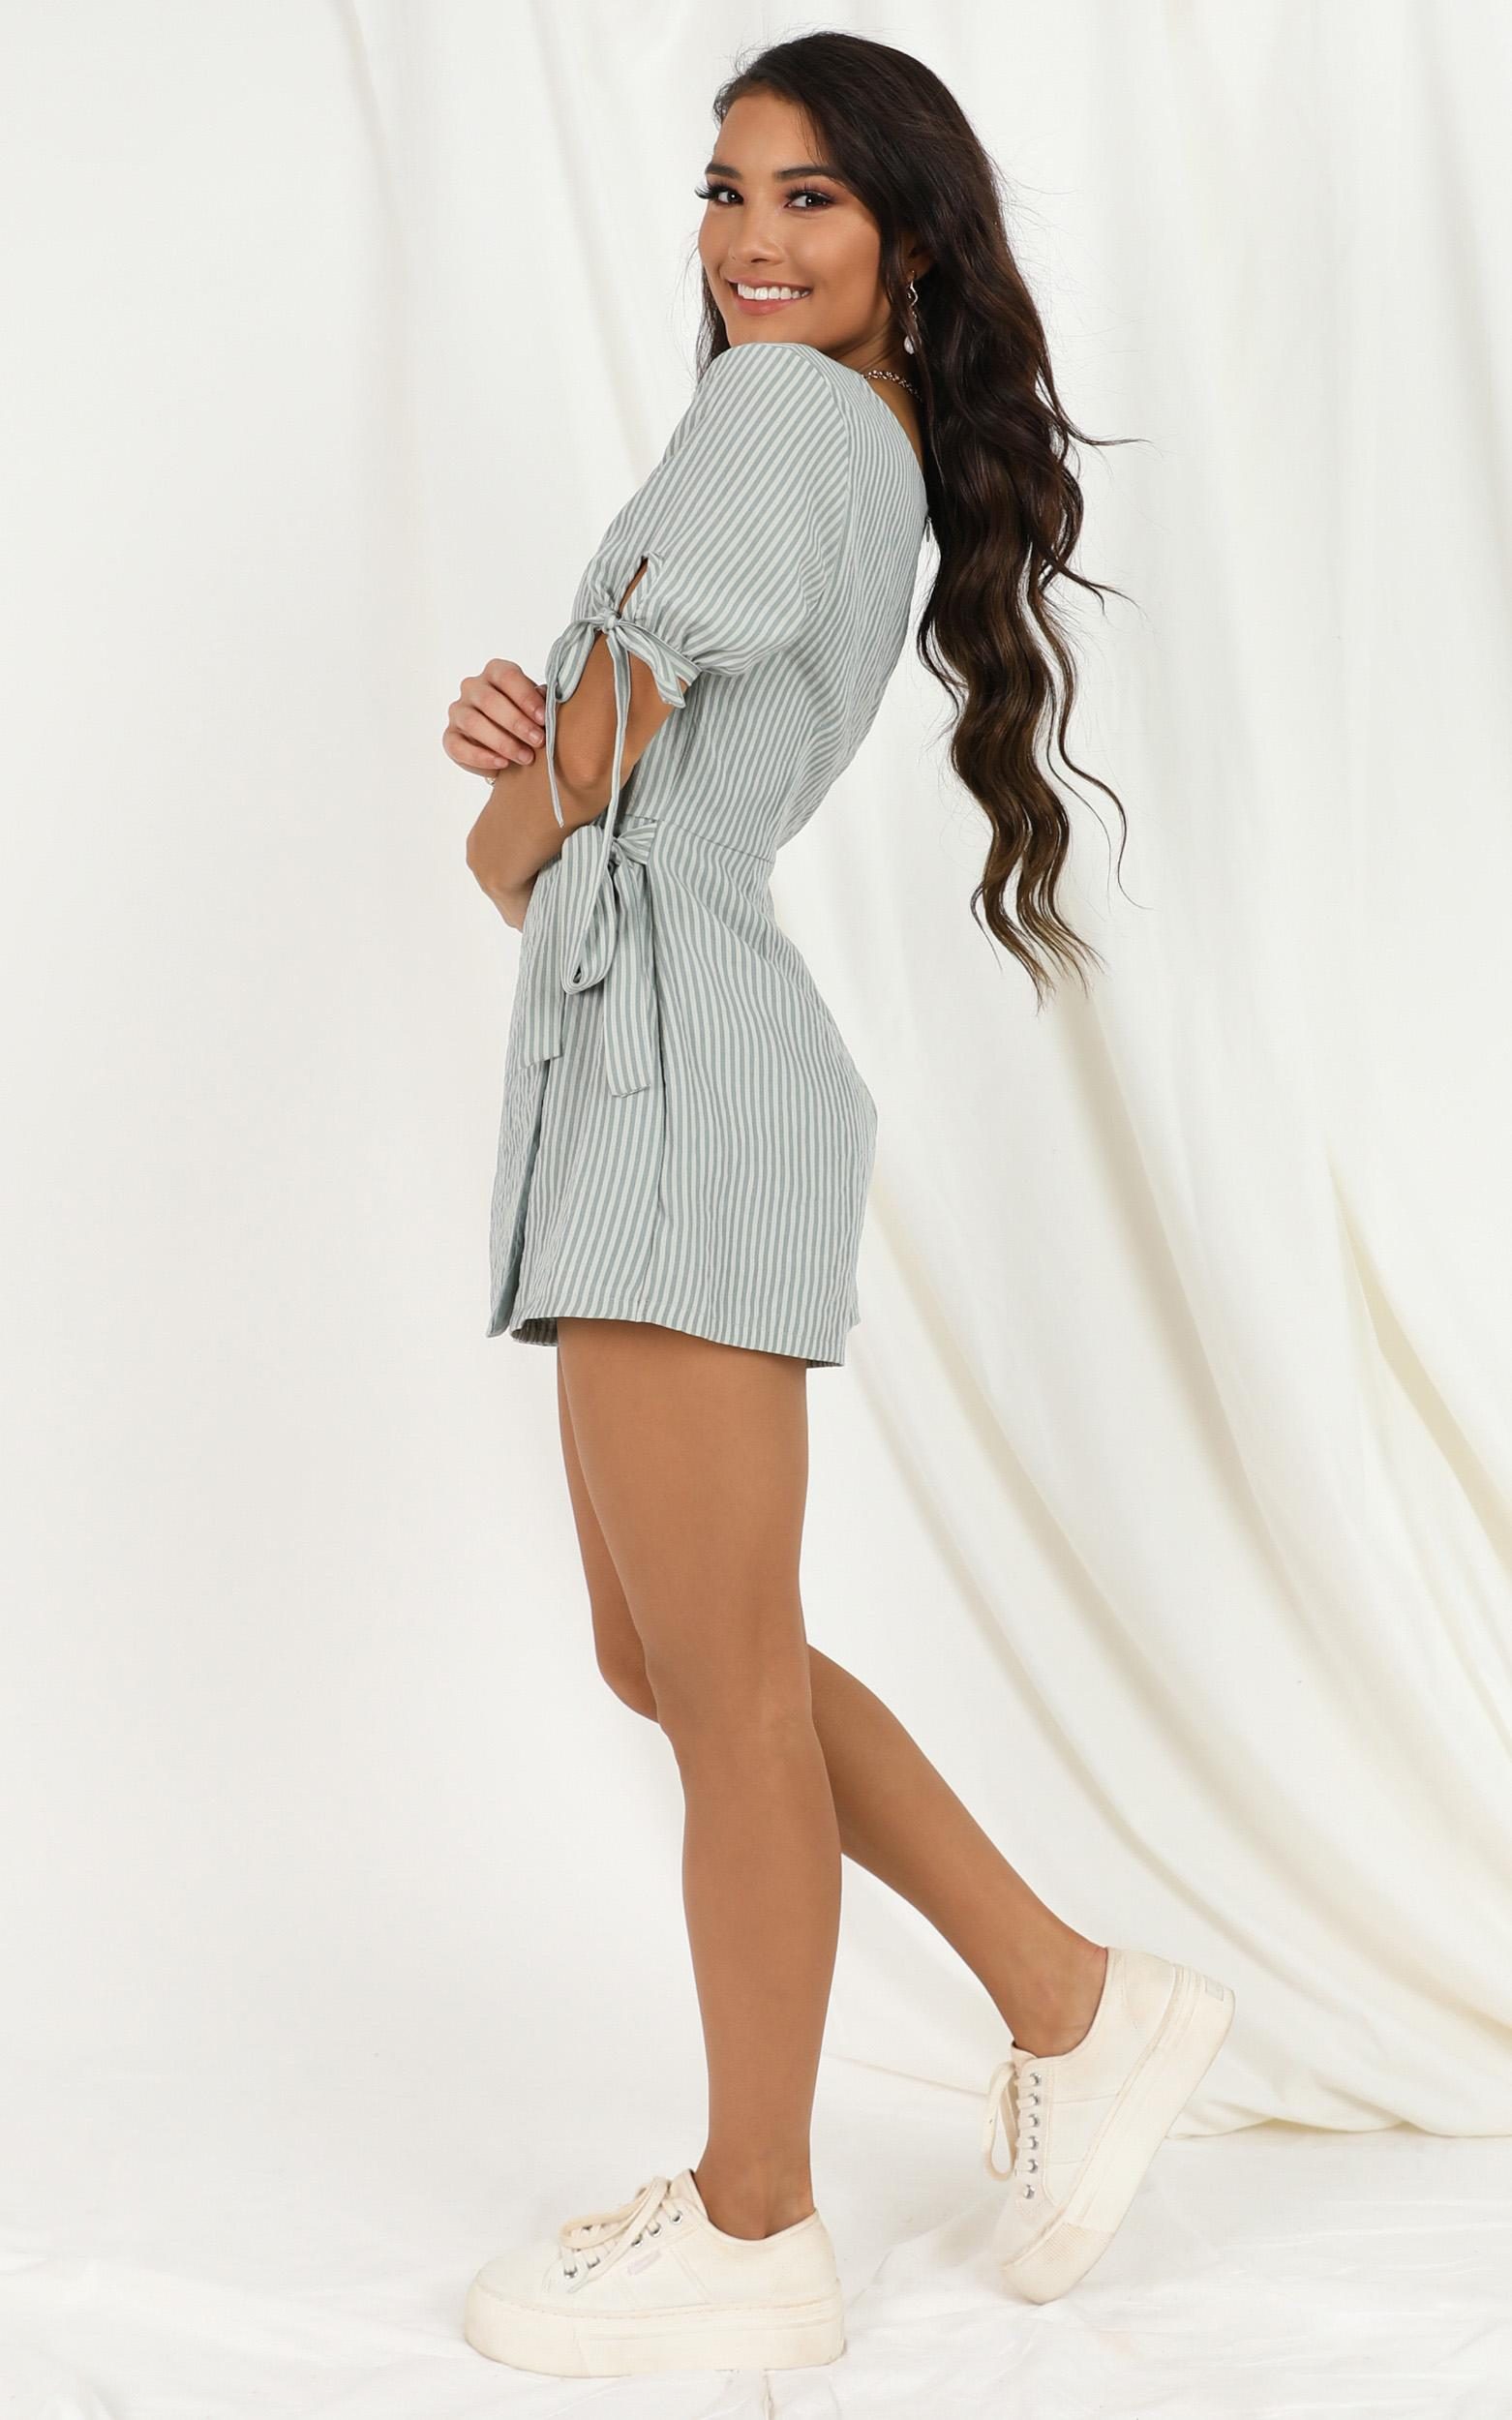 Life Is Great Playsuit in sage stripe - 20 (XXXXL), Sage, hi-res image number null